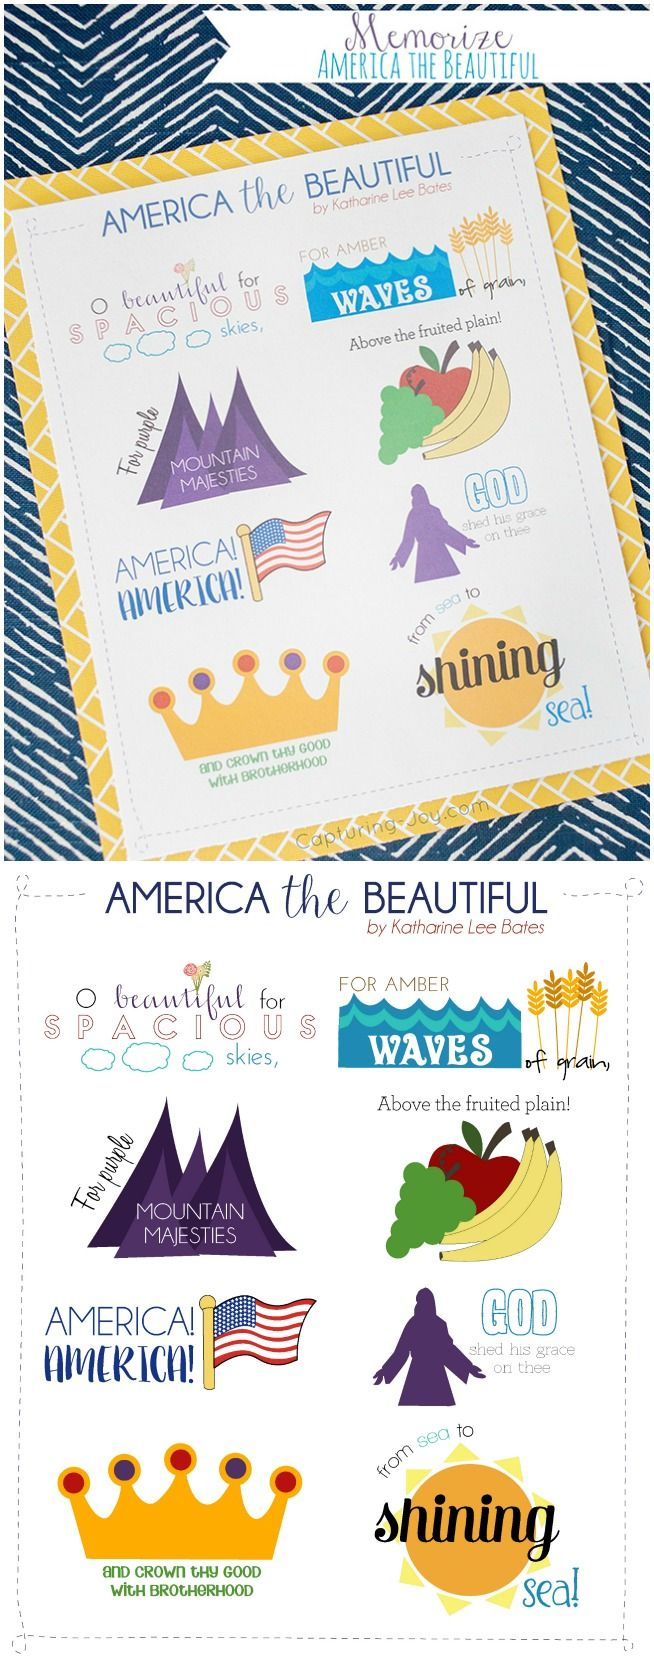 July 4th song America the Beautiful memorize a patriotic song with the family.